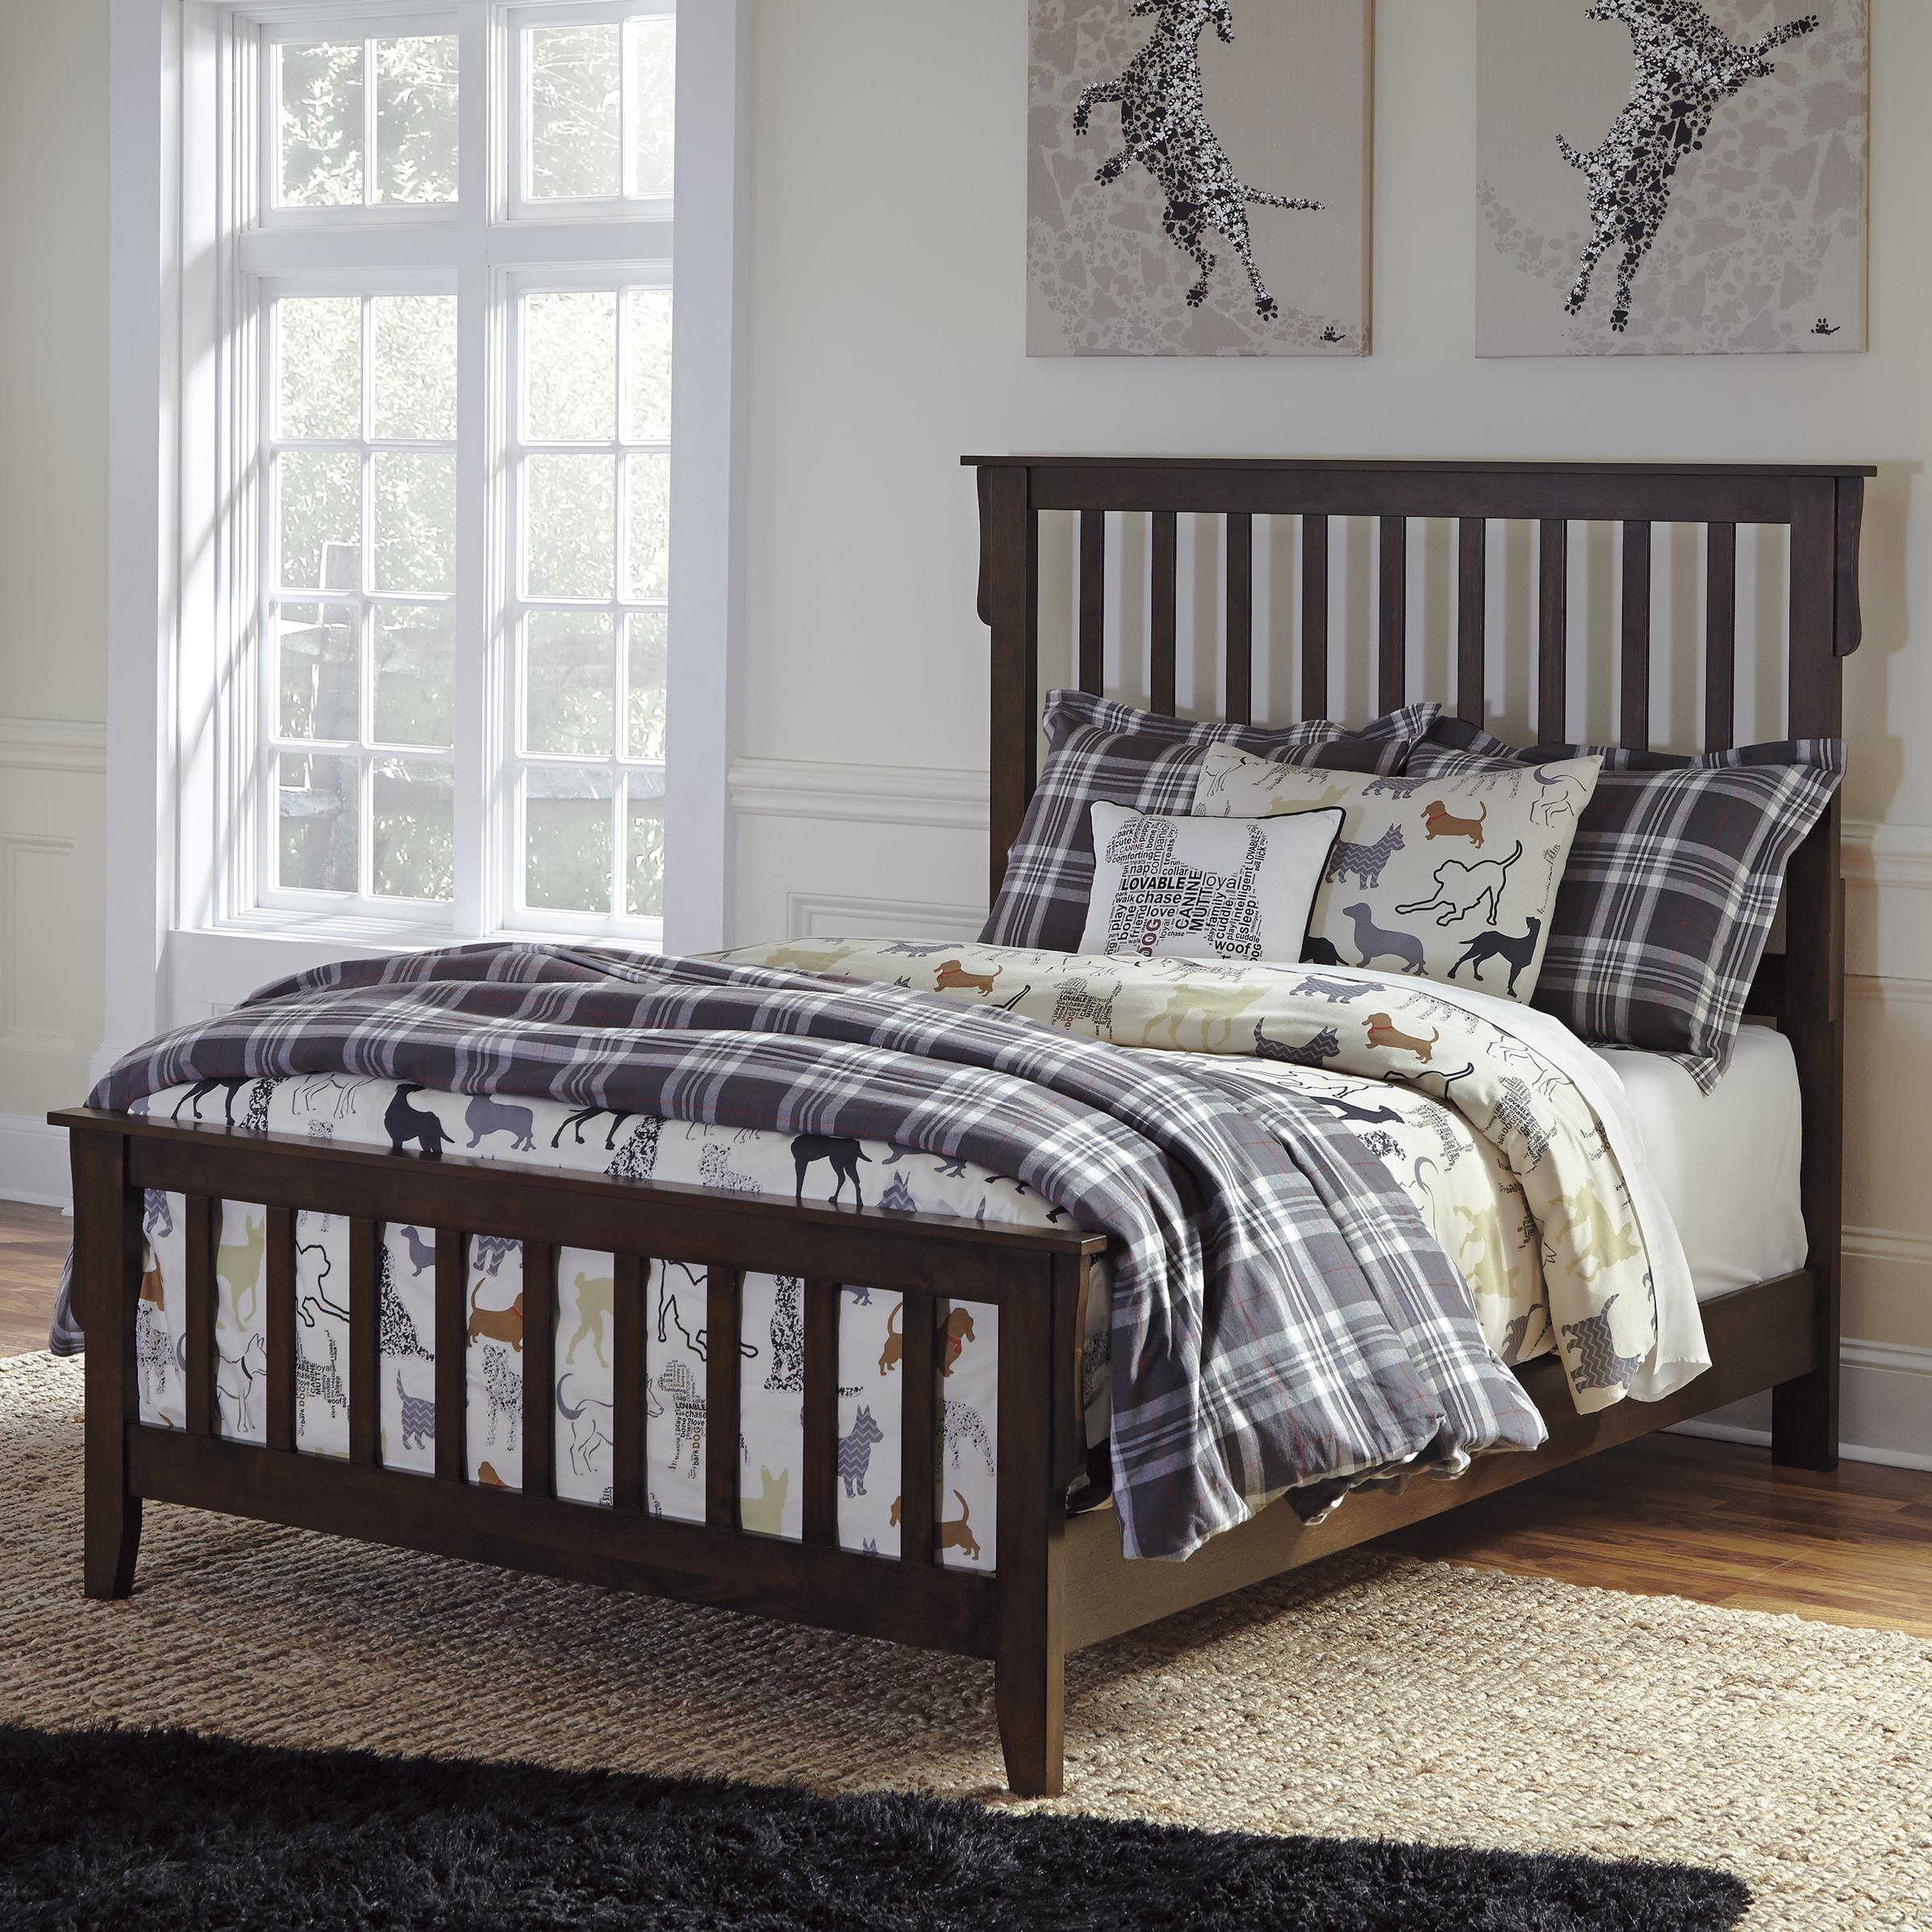 Signature Design by Ashley Strenton Full Bed - Item Number: B568-55+86